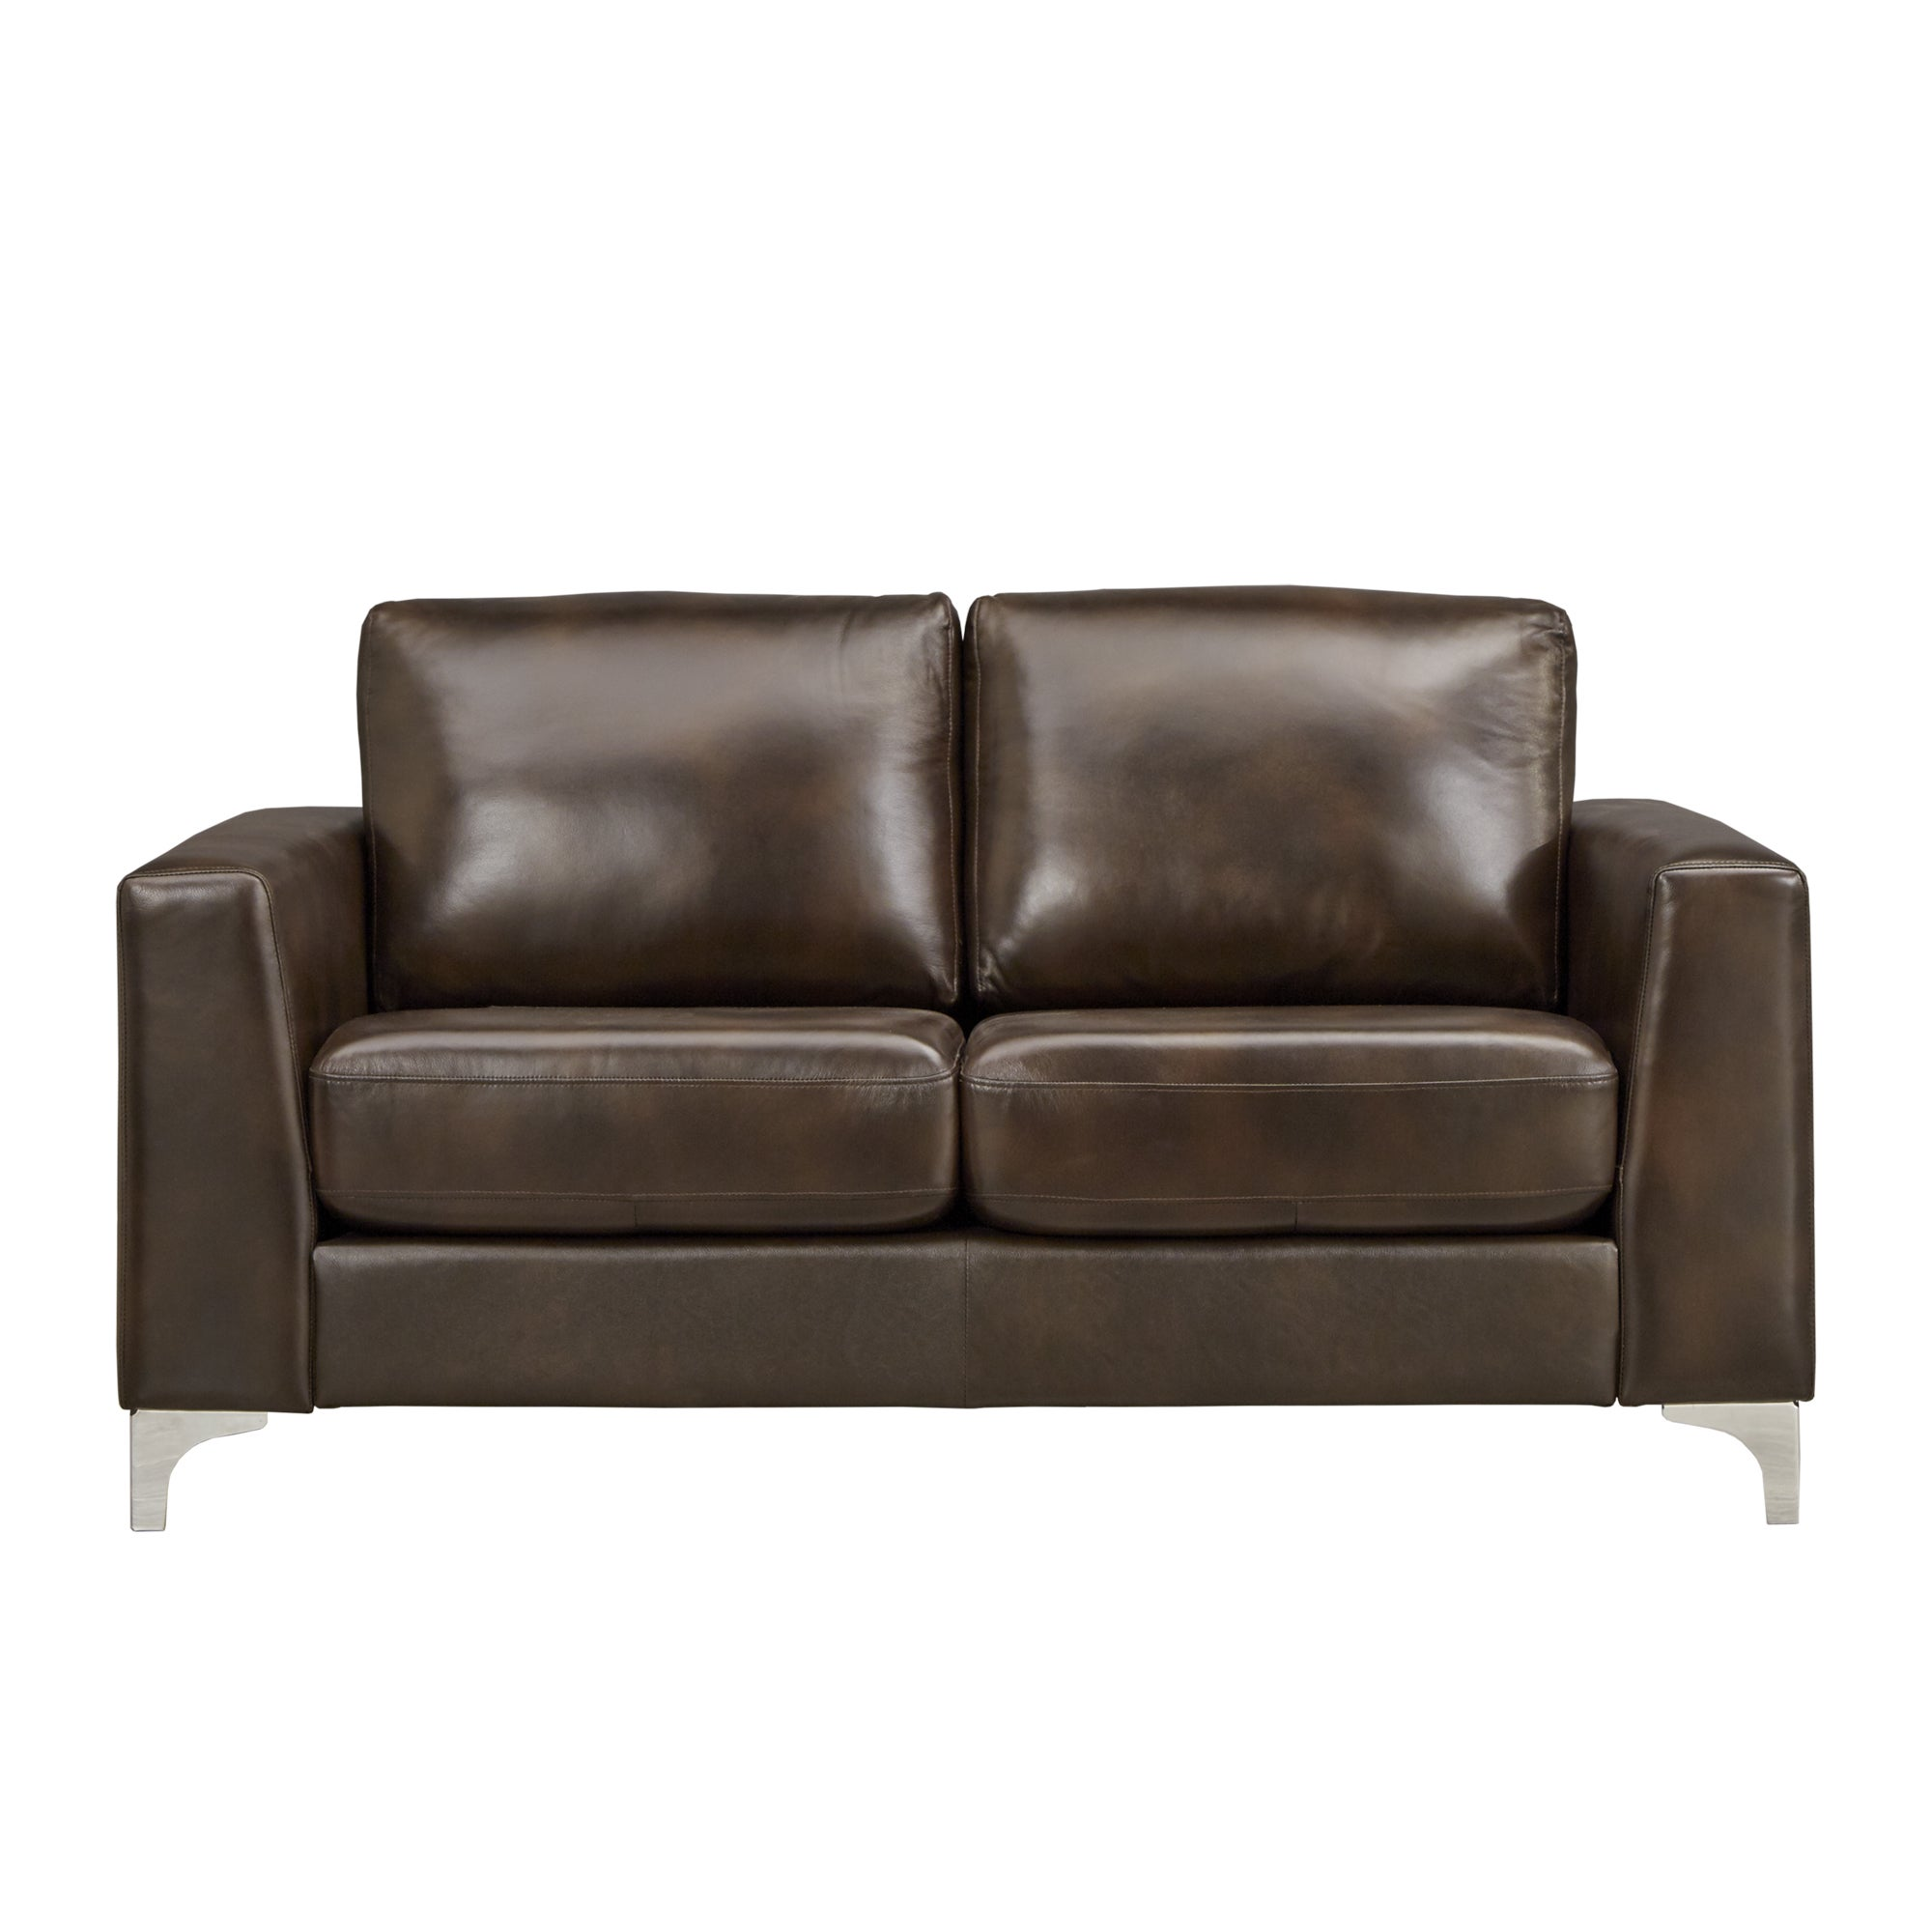 Bastian Aniline Leather Sofa by iNSPIRE Q Modern - Free Shipping Today -  Overstock.com - 20729828